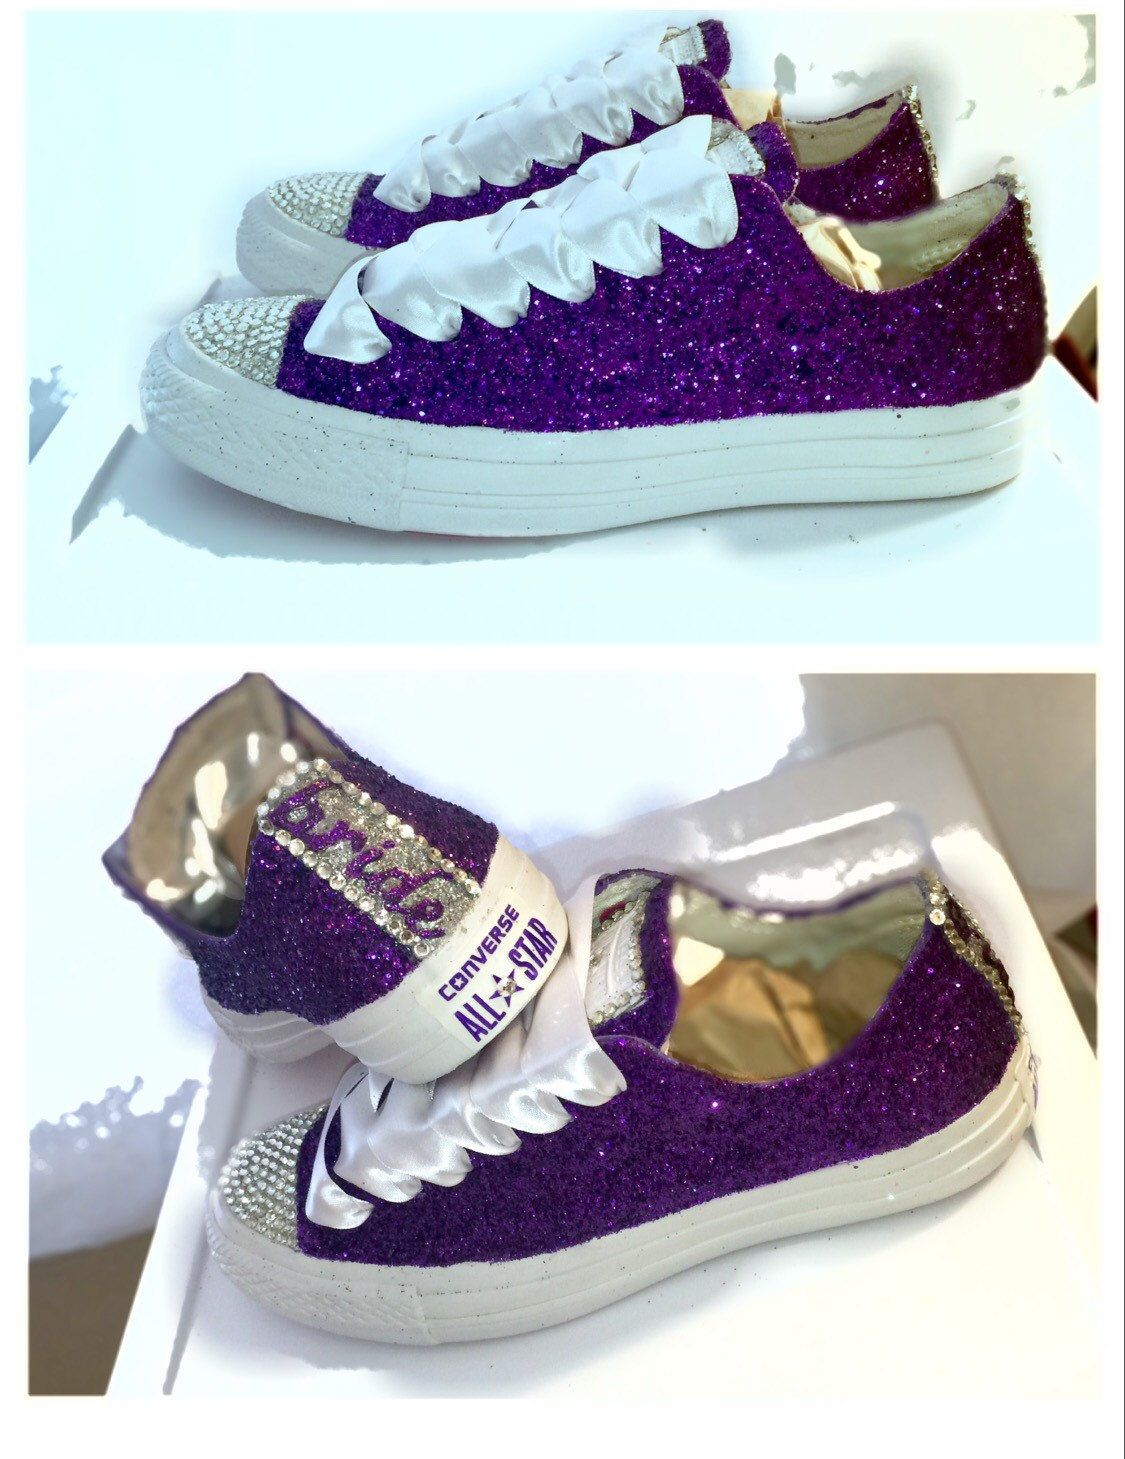 bbebbe6ebc7b Women s Converse all star shoes handmade Sparkly glitter royal purple  eggplant regency chucks sneakers tennis wedding bride prom dance by  CrystalCleatss on ...